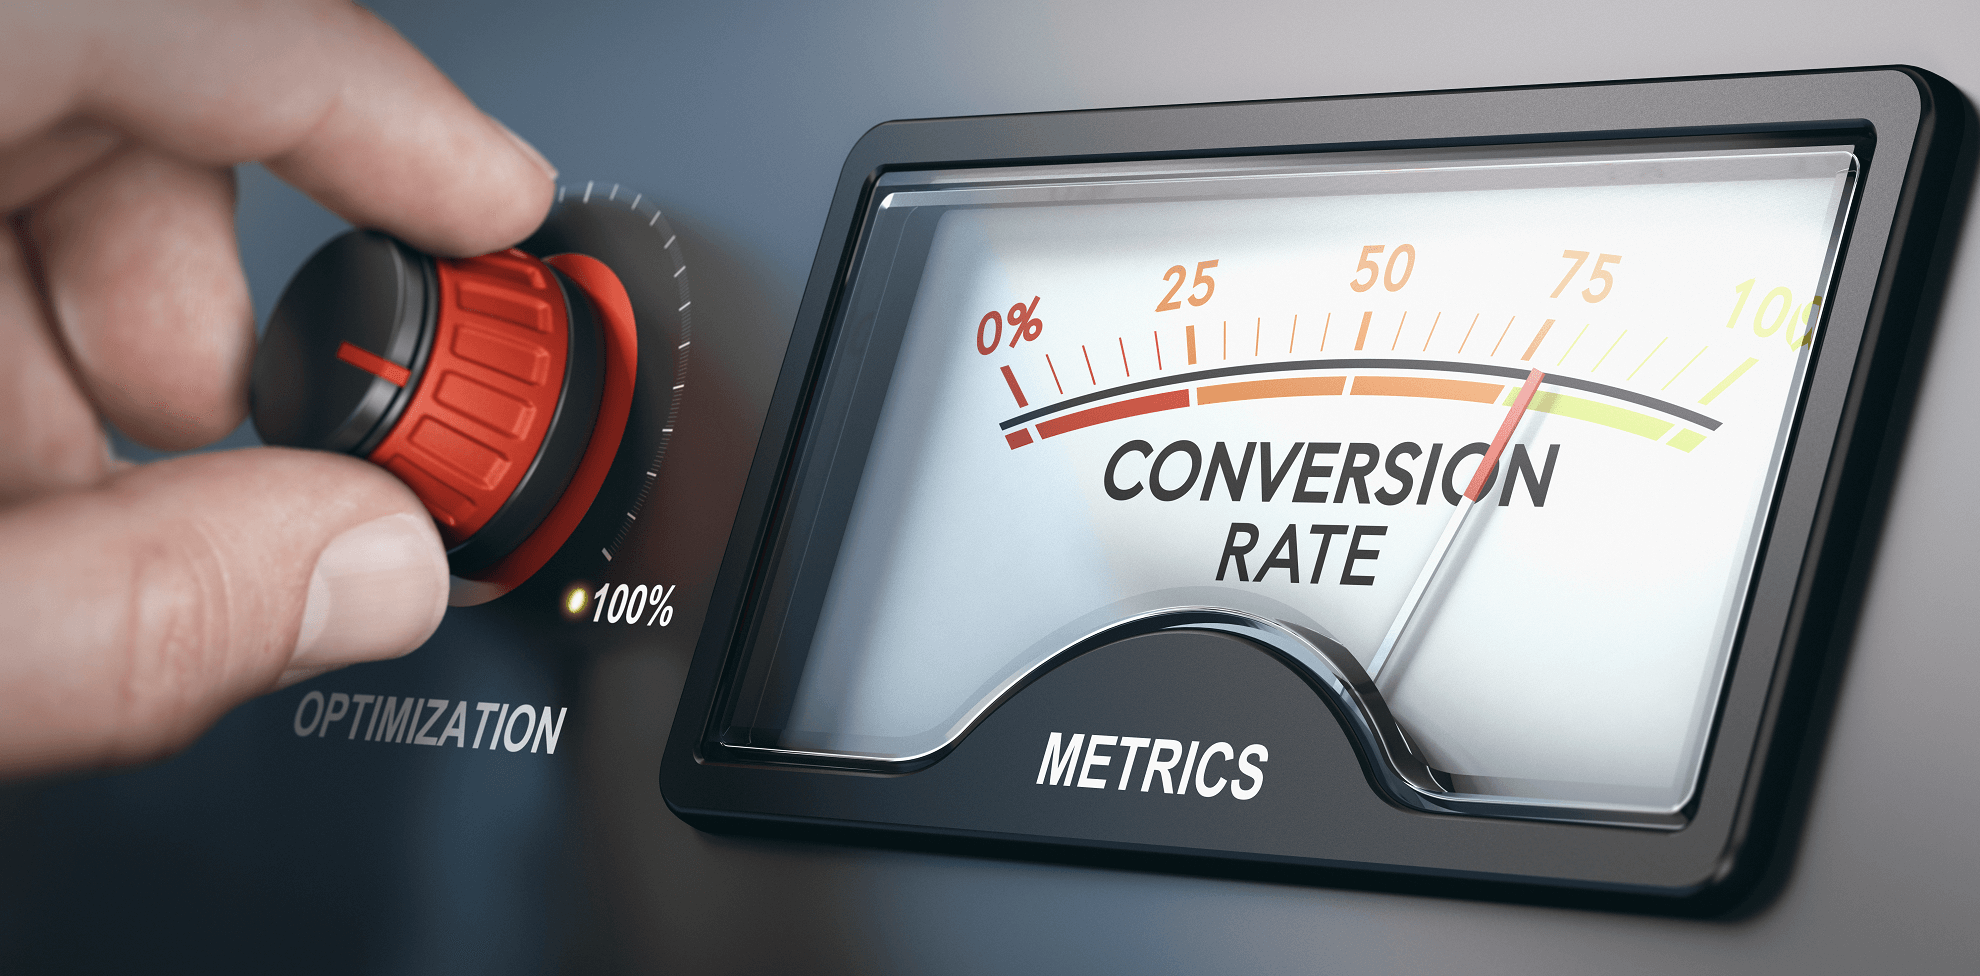 Increases Conversions rate